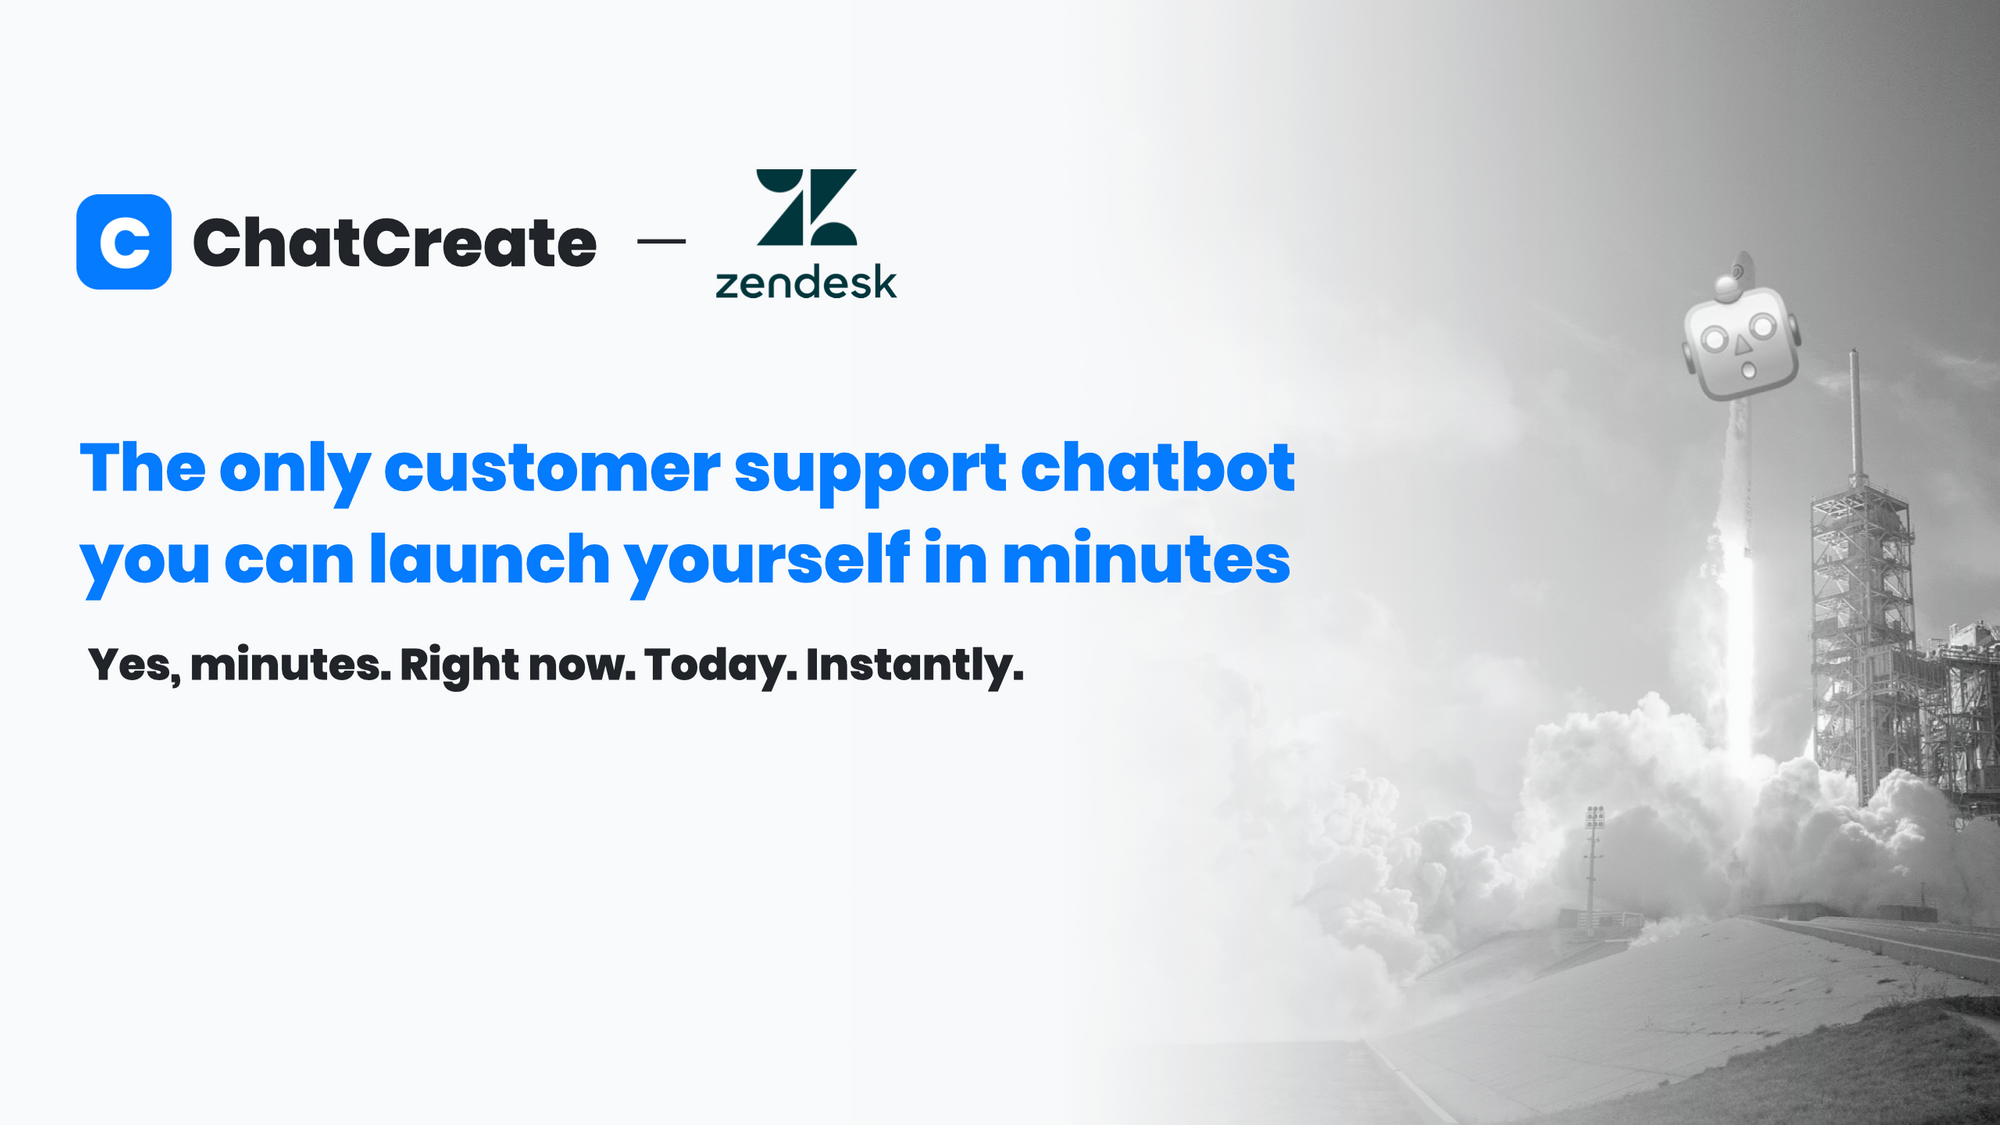 Step-by-step guide: How to setup a Zendesk chatbot with ChatCreate.